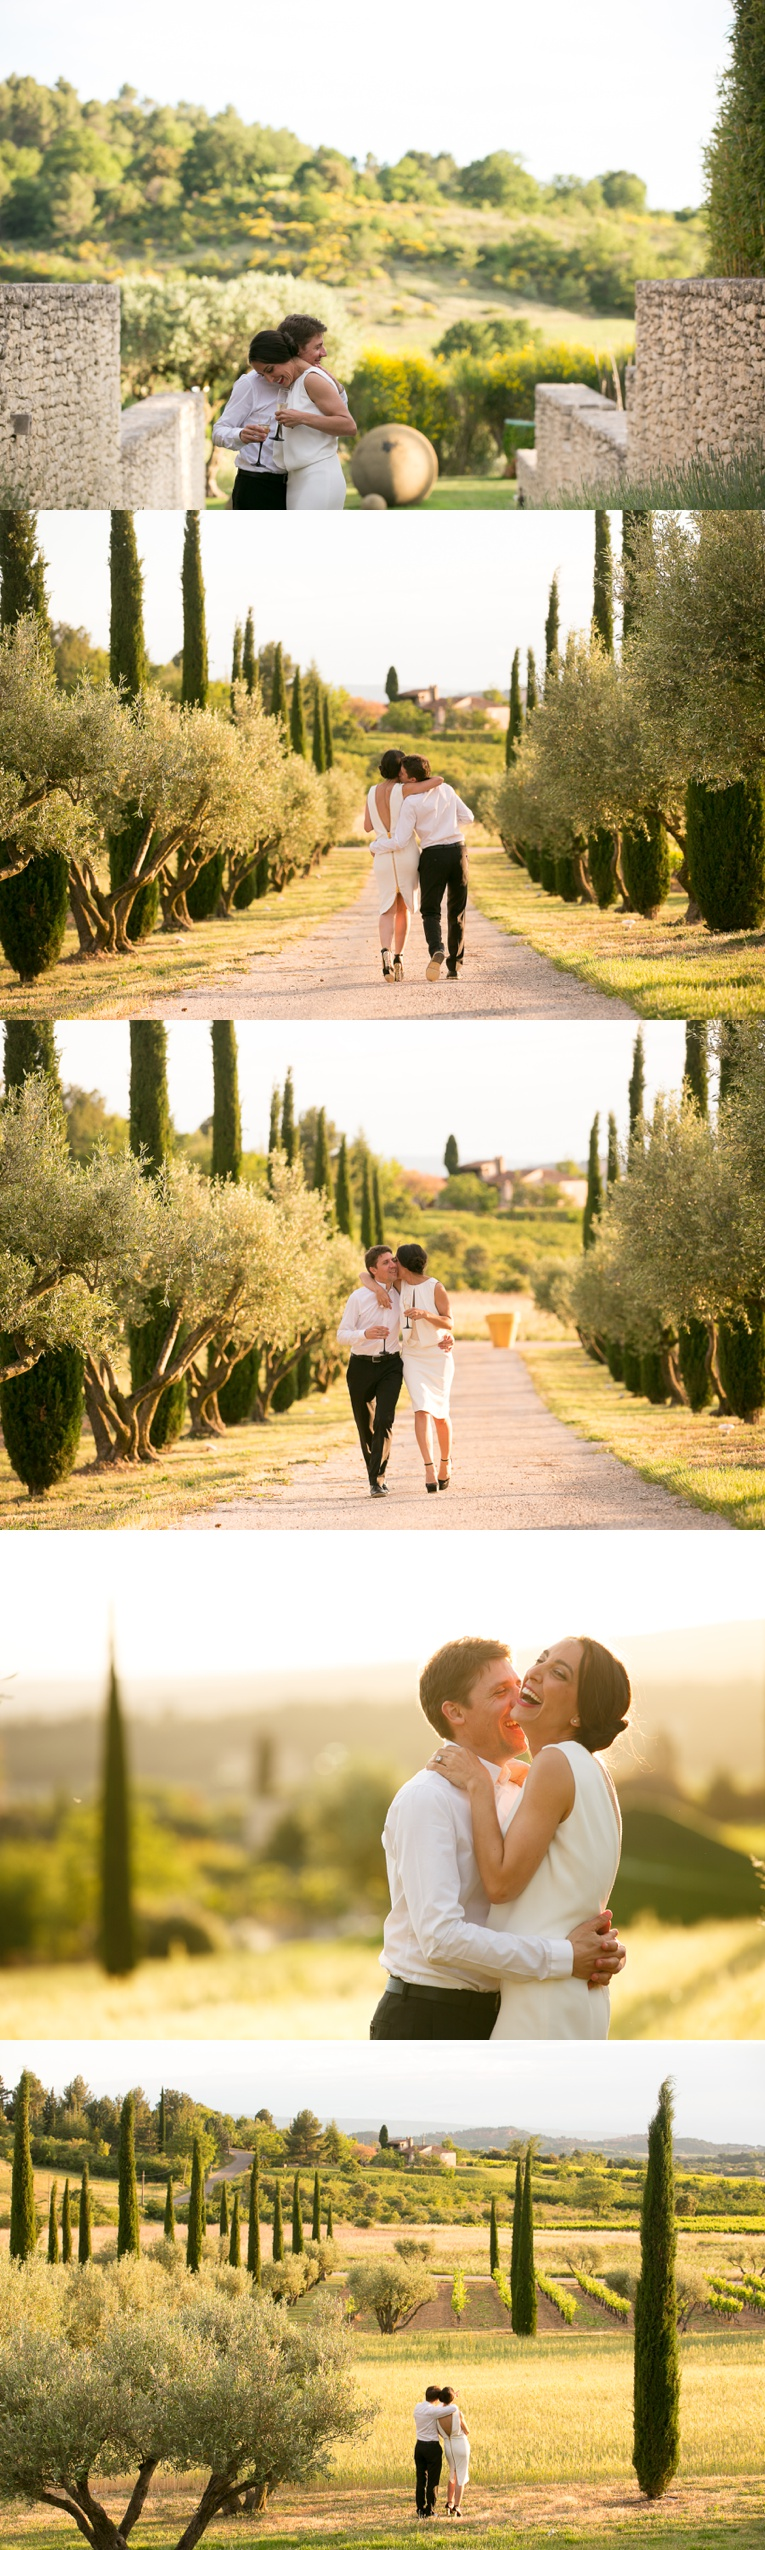 mariage-domaine-des andeols-provence_0007